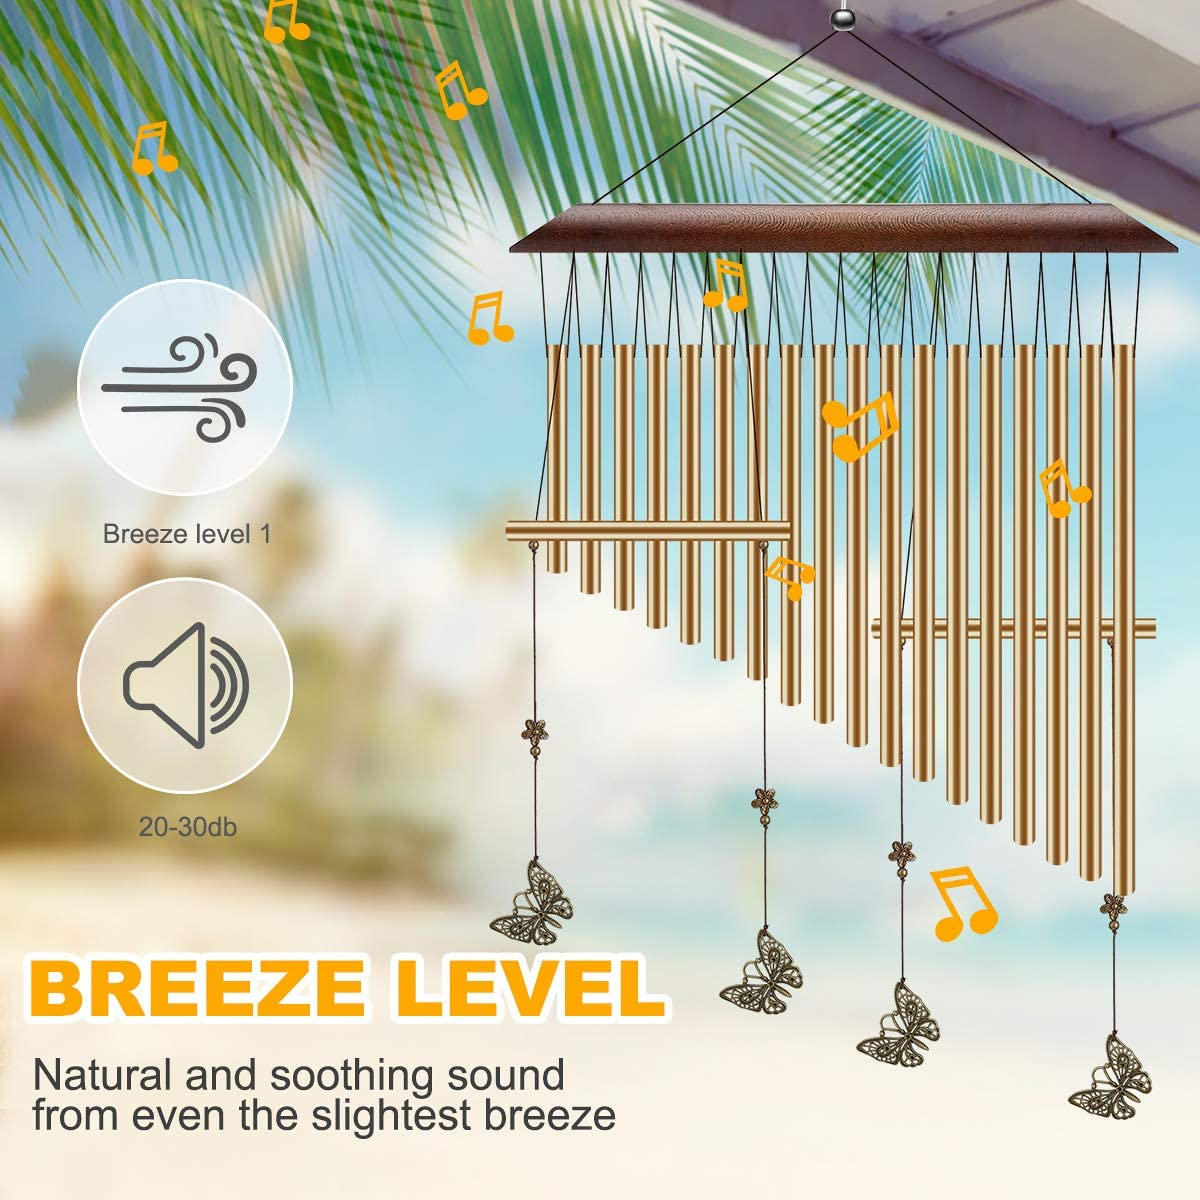 CestMall Wind Chimes Memorial Wind Chimes Outdoor Large Deep Tone 30 Sympathy Amazing Grace Wind Chimes with 18 Tubes Soothing Tone Metal Wind Chimes for Patio Garden Yard Balcony Porch Home Decor